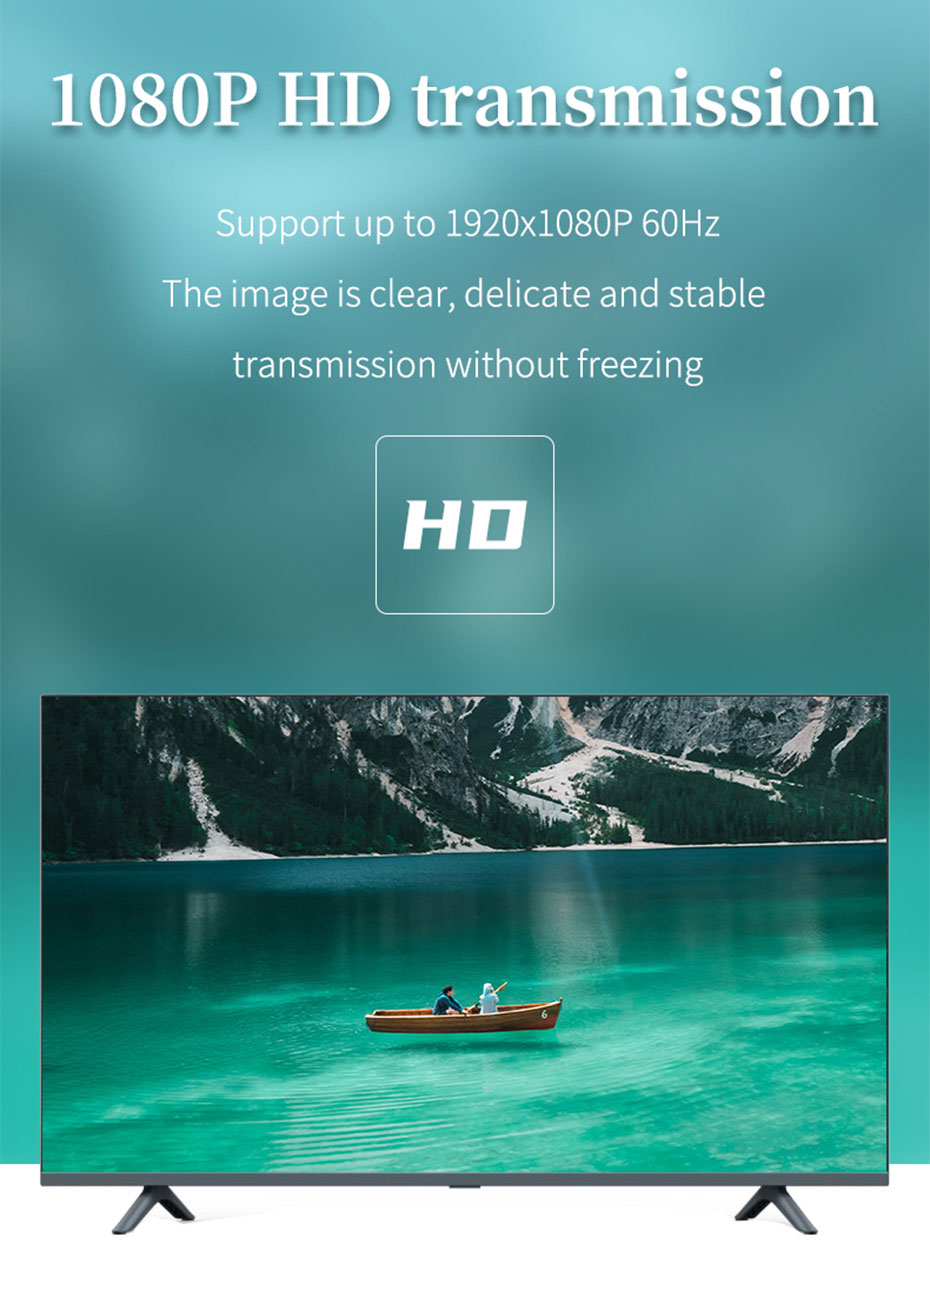 VGA matrix switcher 8x8 with RS232 supports up to 1920*1080p@60Hz resolution